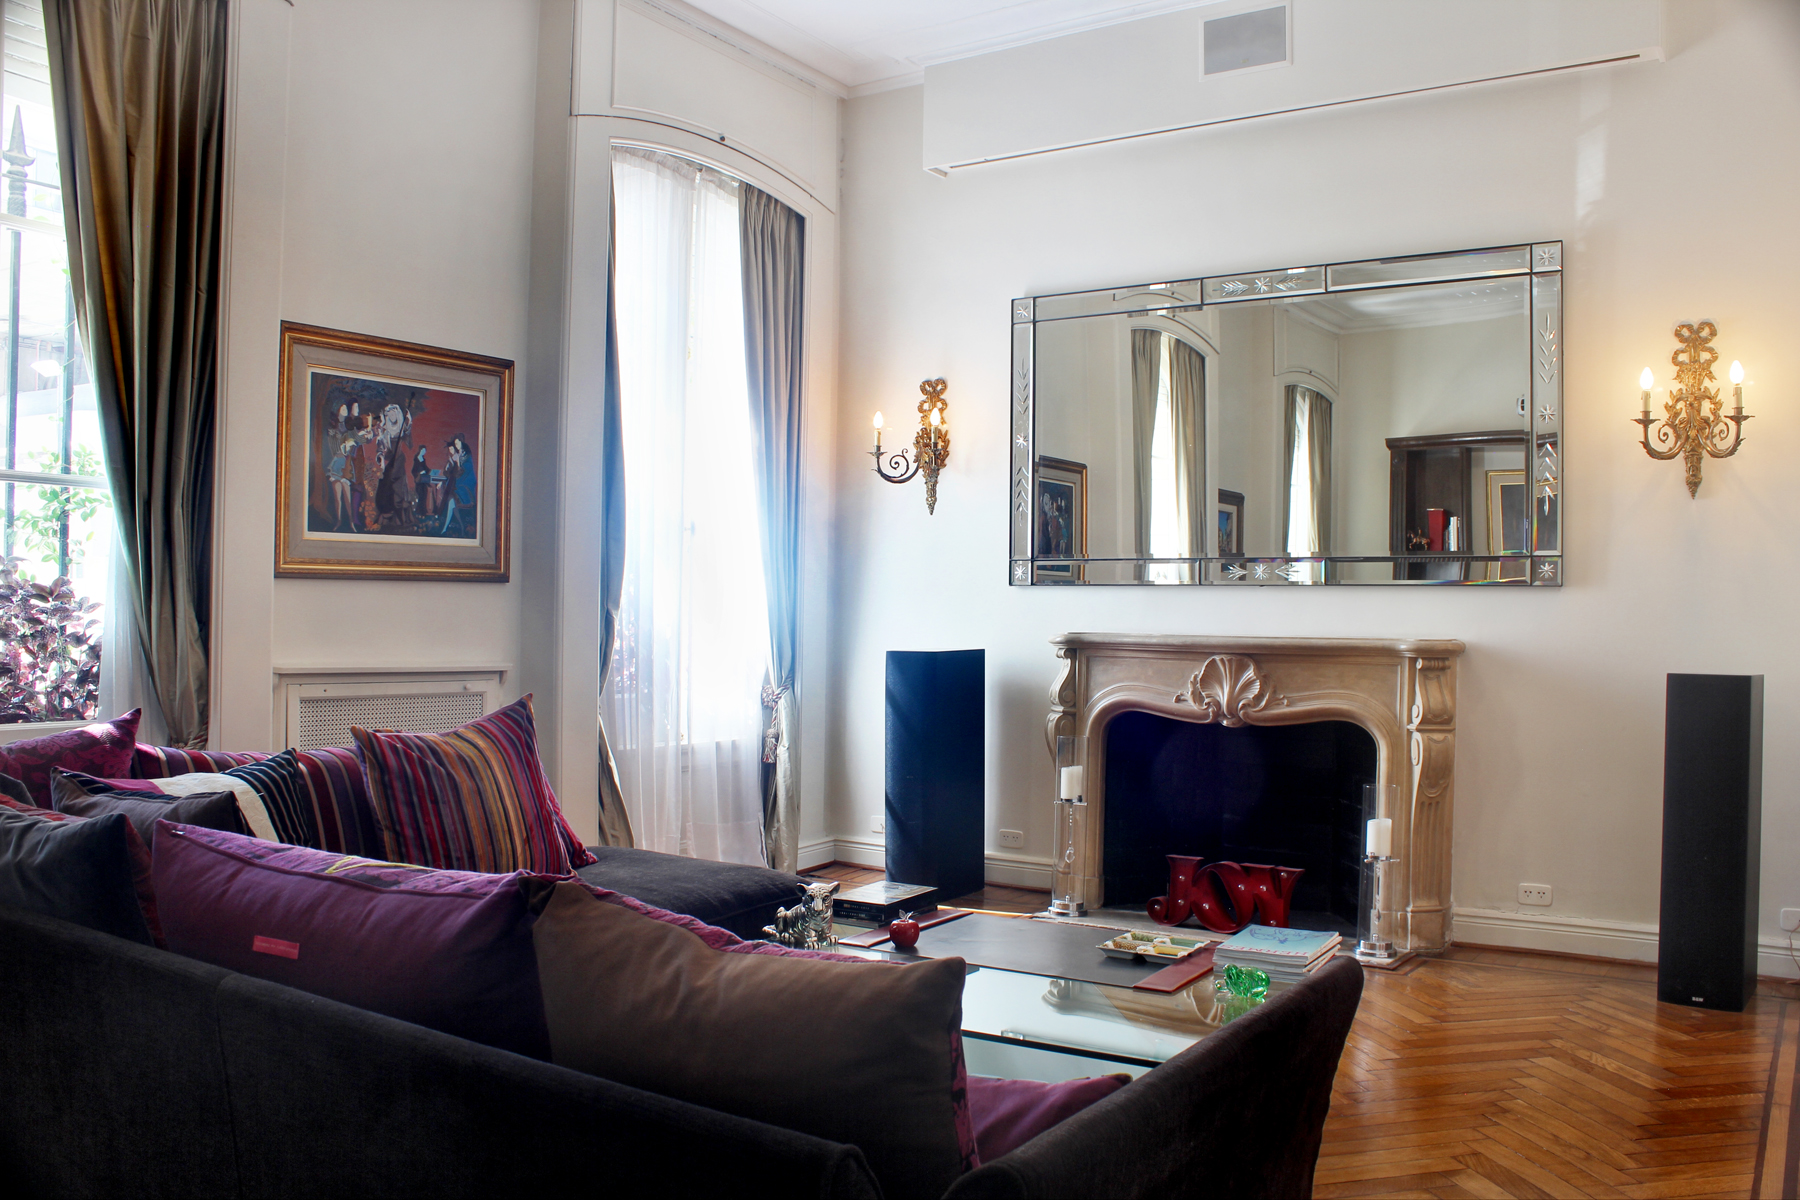 Property for Sale at Outstanding ground floor Aguero 2400 Buenos Aires, Buenos Aires C1425EIA Argentina